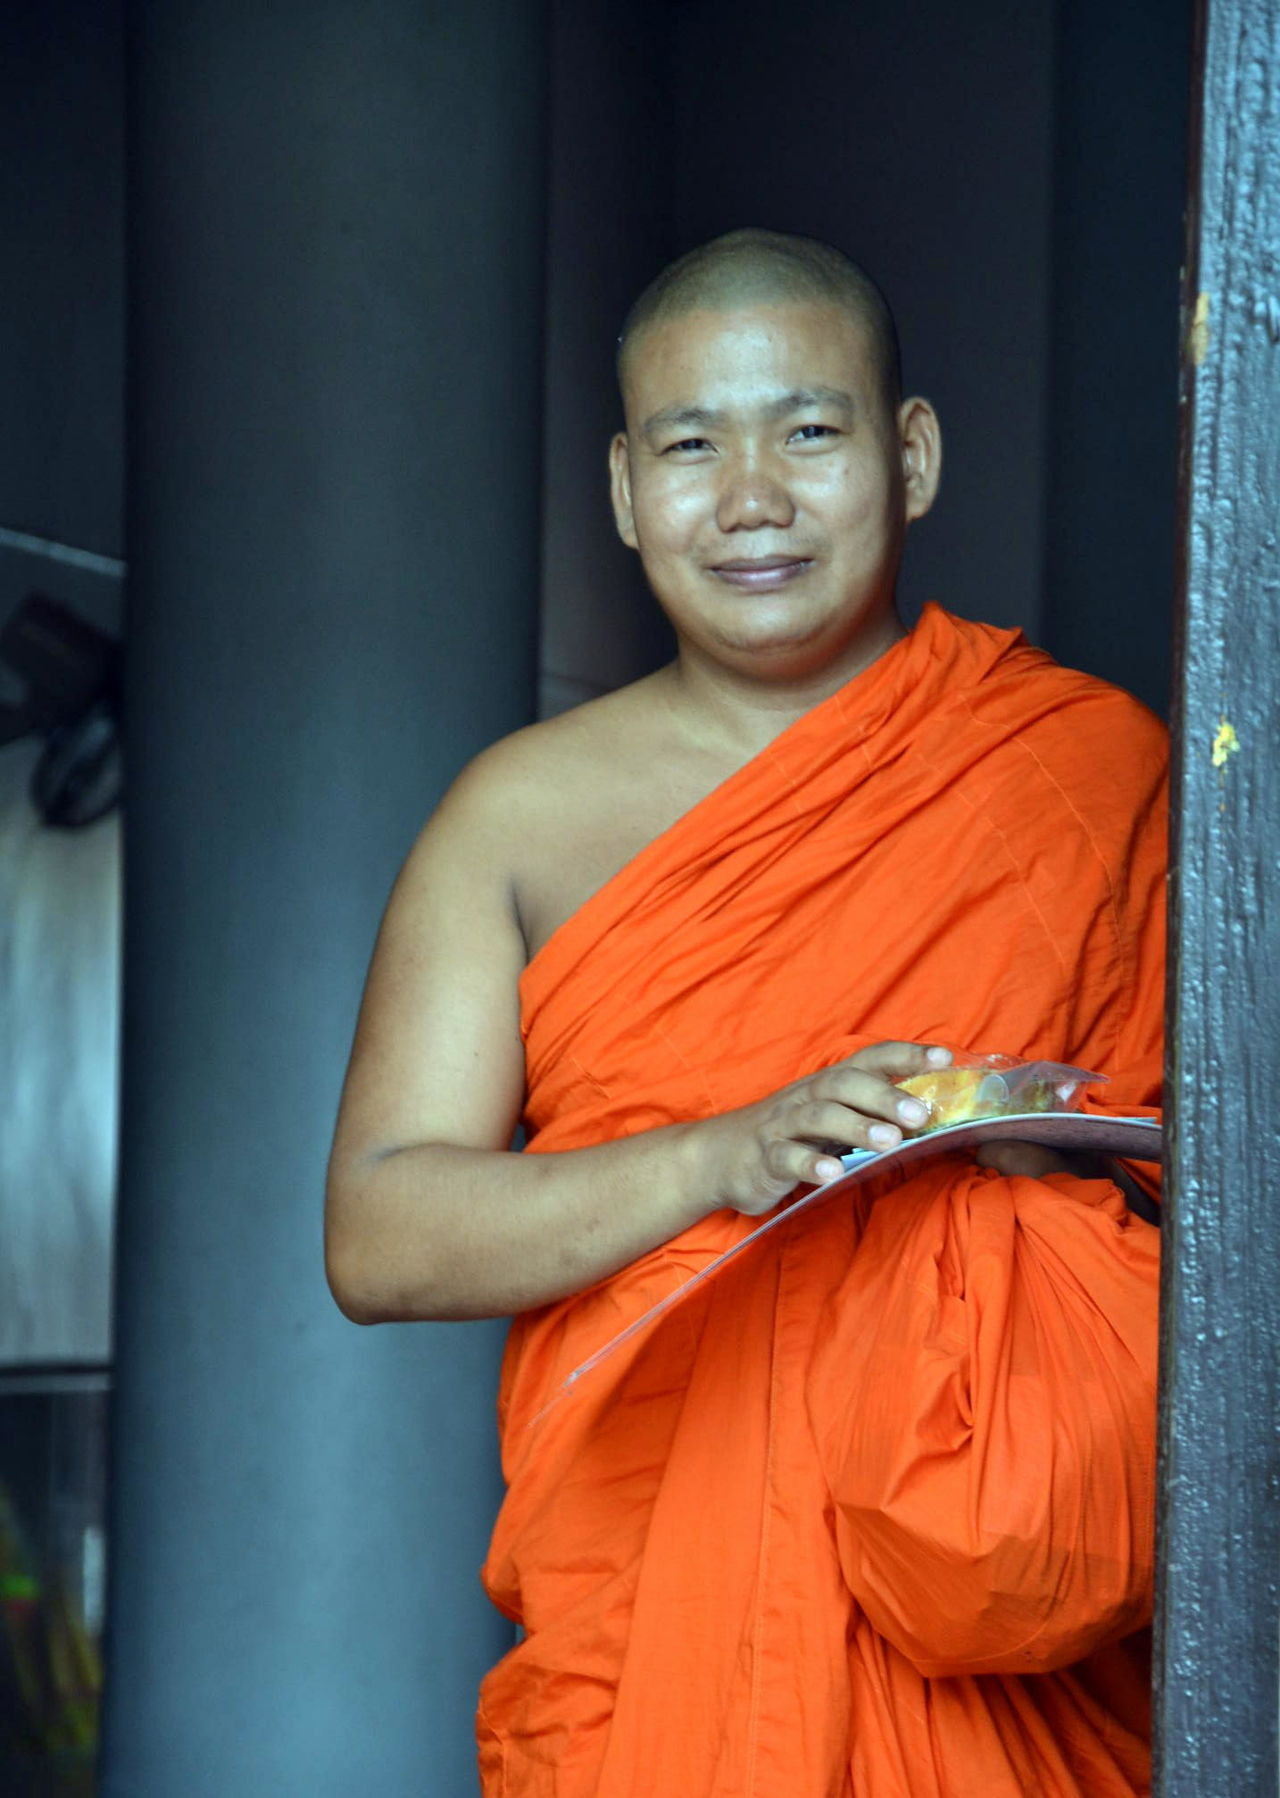 Buddhism Buddhist Monks Day Looking At Camera Looking At Camera One Man Only One Person Orange Color Orange Colour Portrait Religion Religion And Beliefs Smiling Standing Thailand Traditional Thailand Travel Thailand Trip Three Quarter Length Young Adult